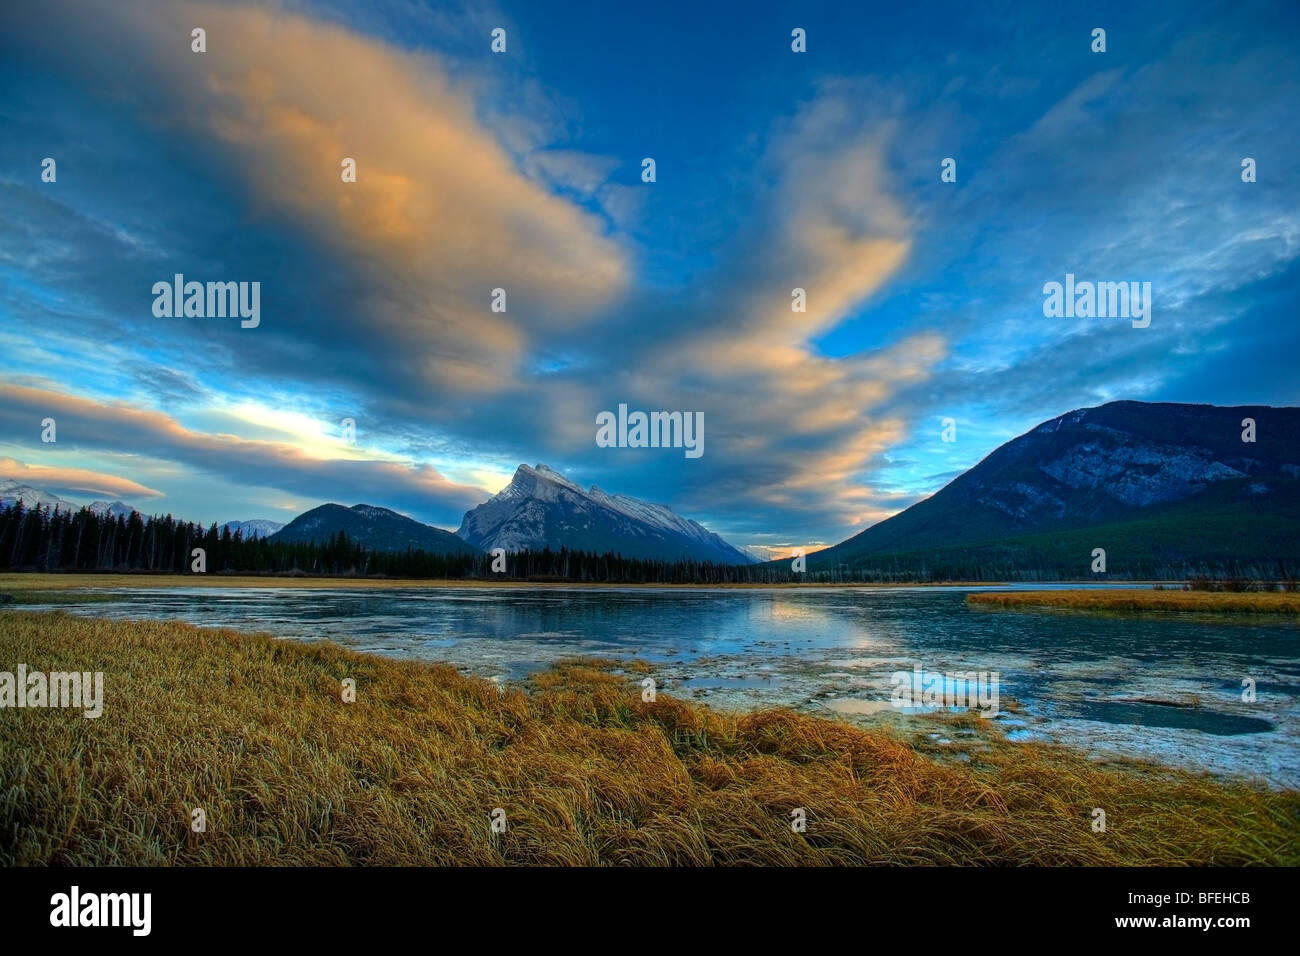 Sunset clouds over Mount Rundle and the Vermillion Lakes, Banff, Alberta, Canada - Stock Image